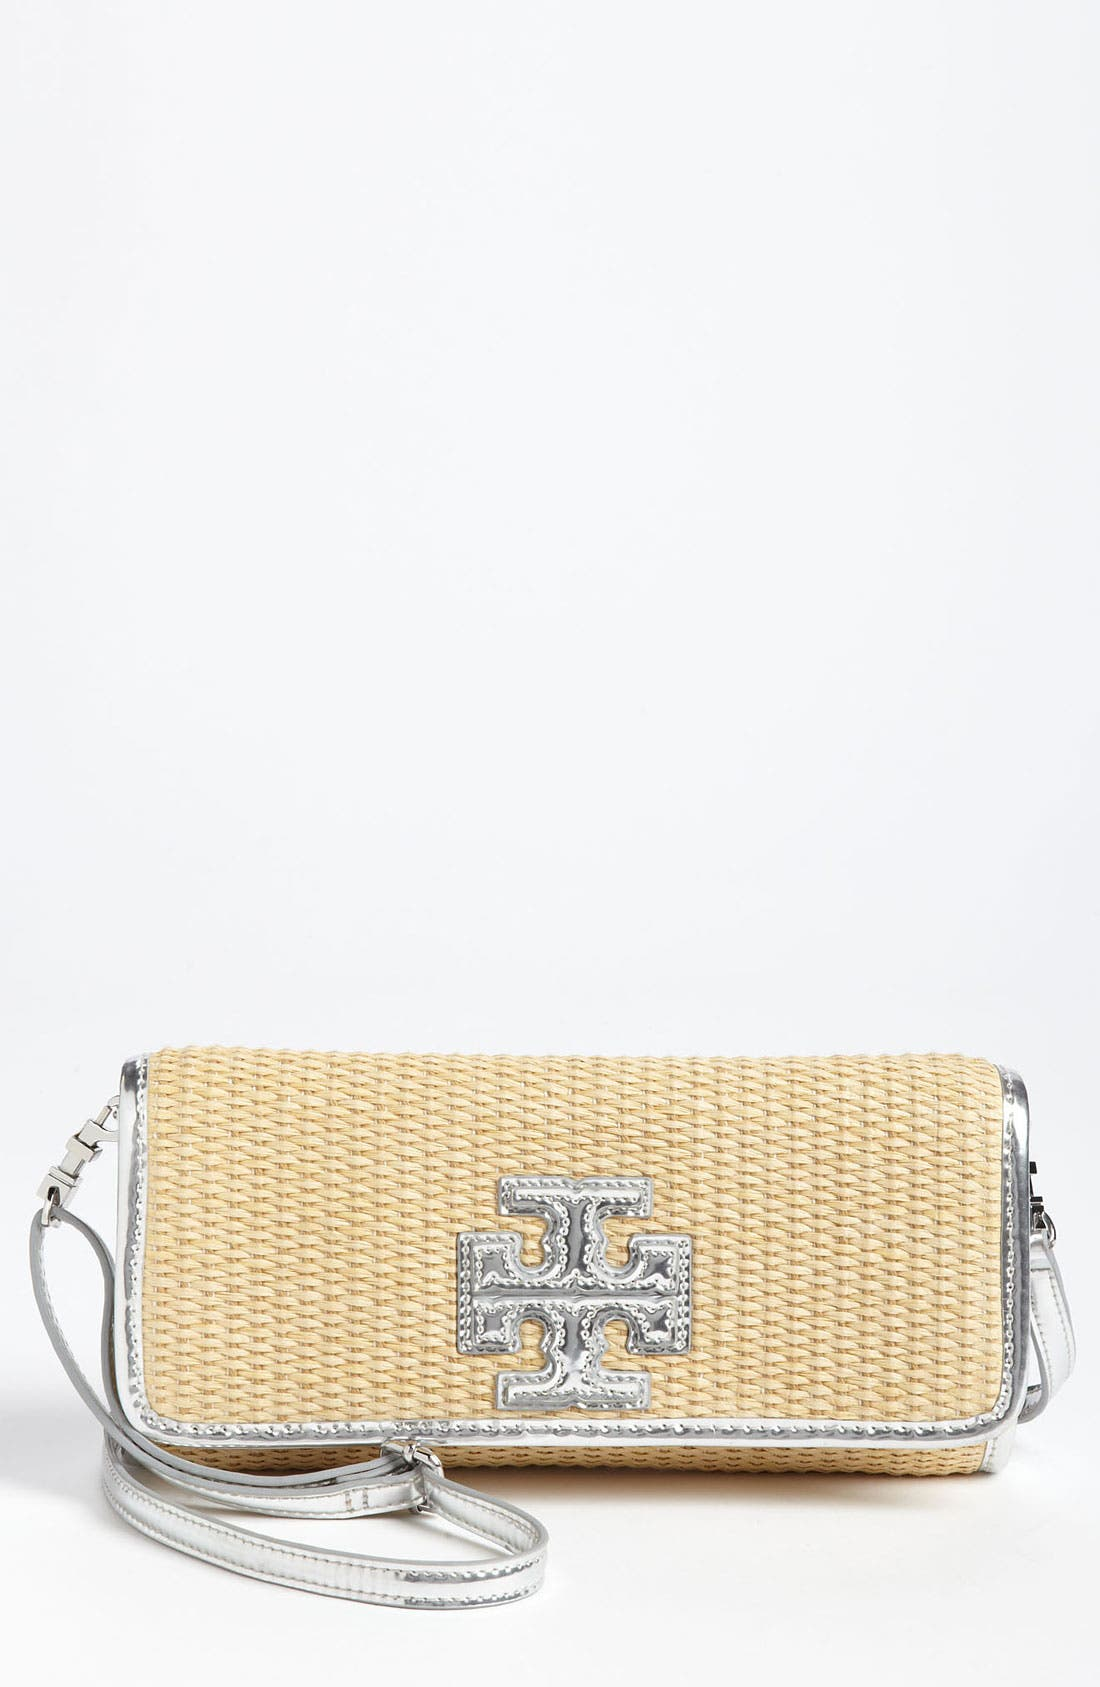 Main Image - Tory Burch 'Stacked T' Clutch